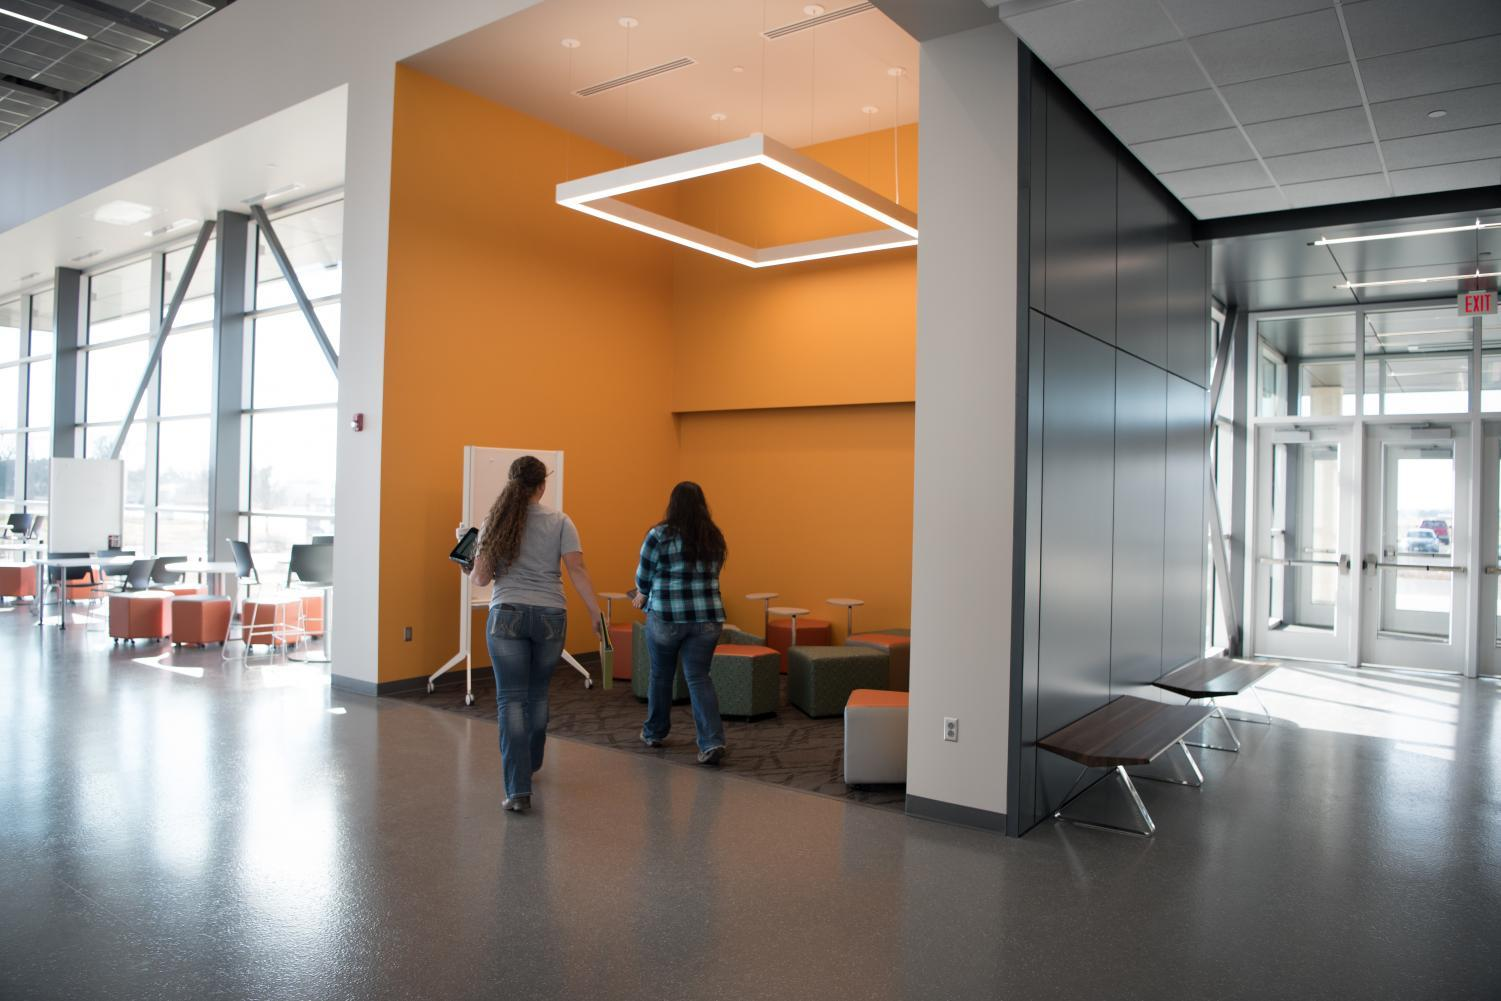 Two+students+walk+to+work+in+the+new+study+nooks.+These+nooks+are+outfitted+with+comfortable+chairs%2C+white+boards+and+plenty+of+working+space.